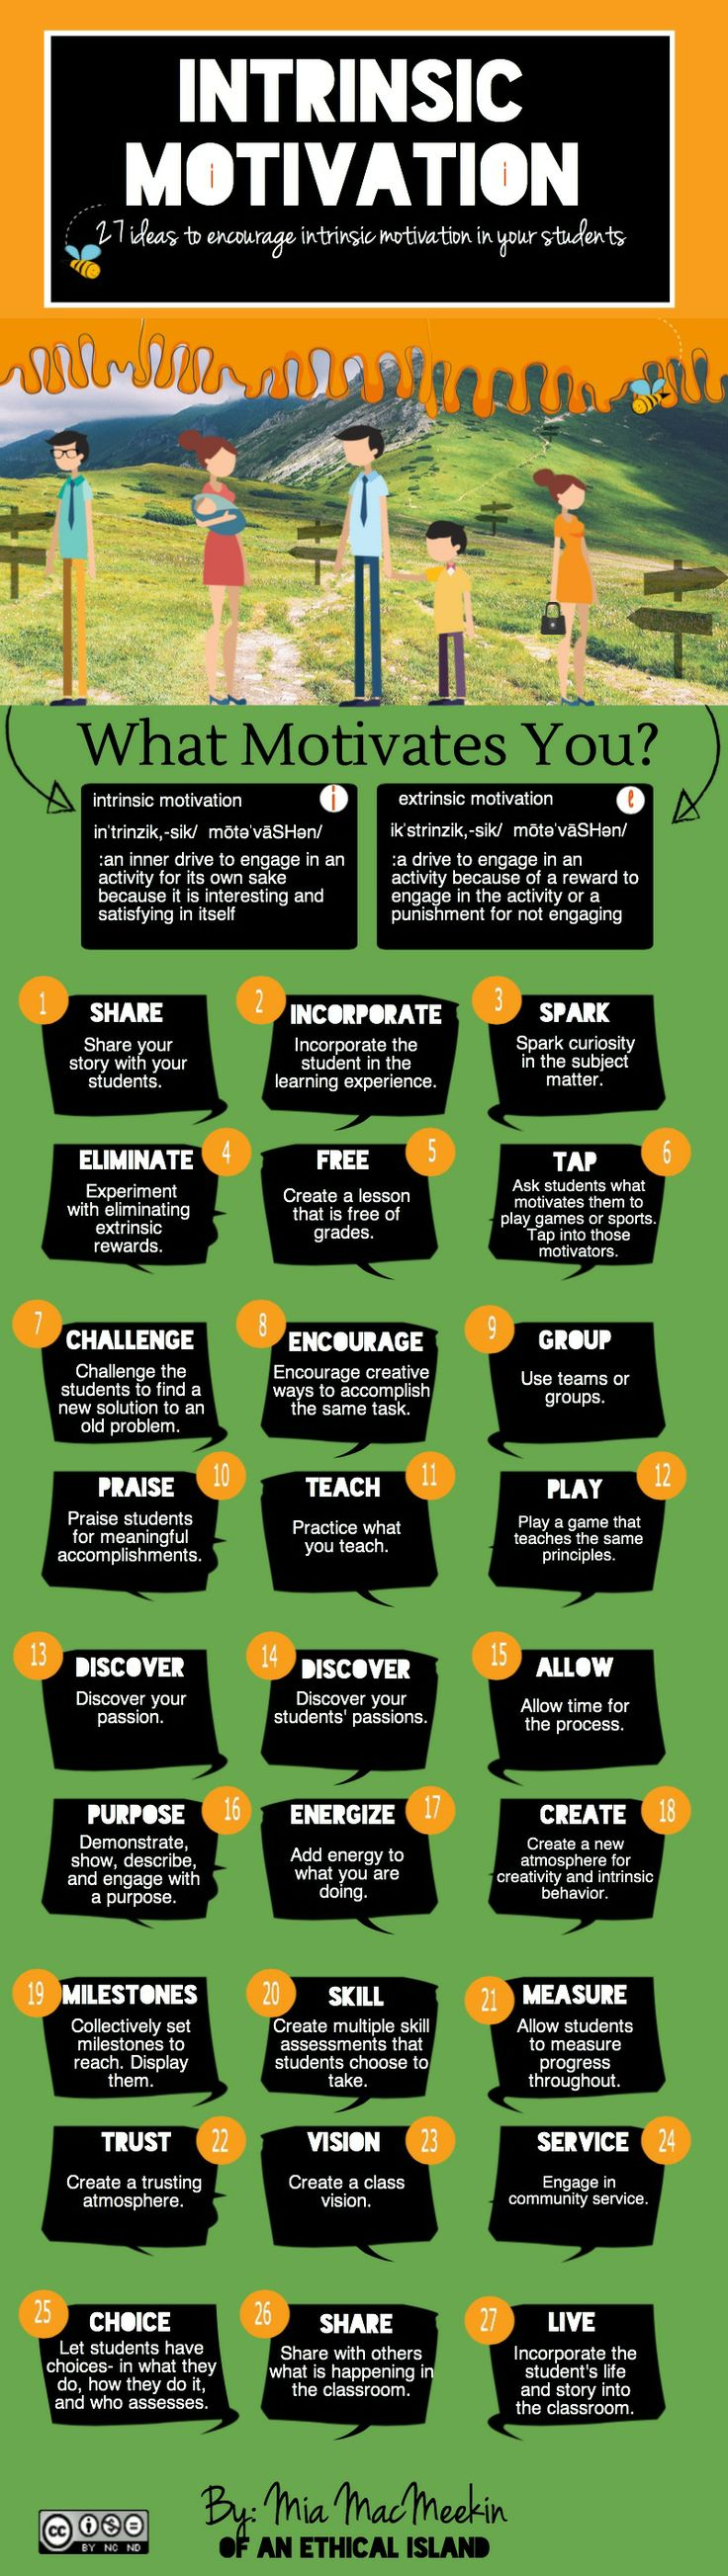 Intrinsic Motivation Ideas